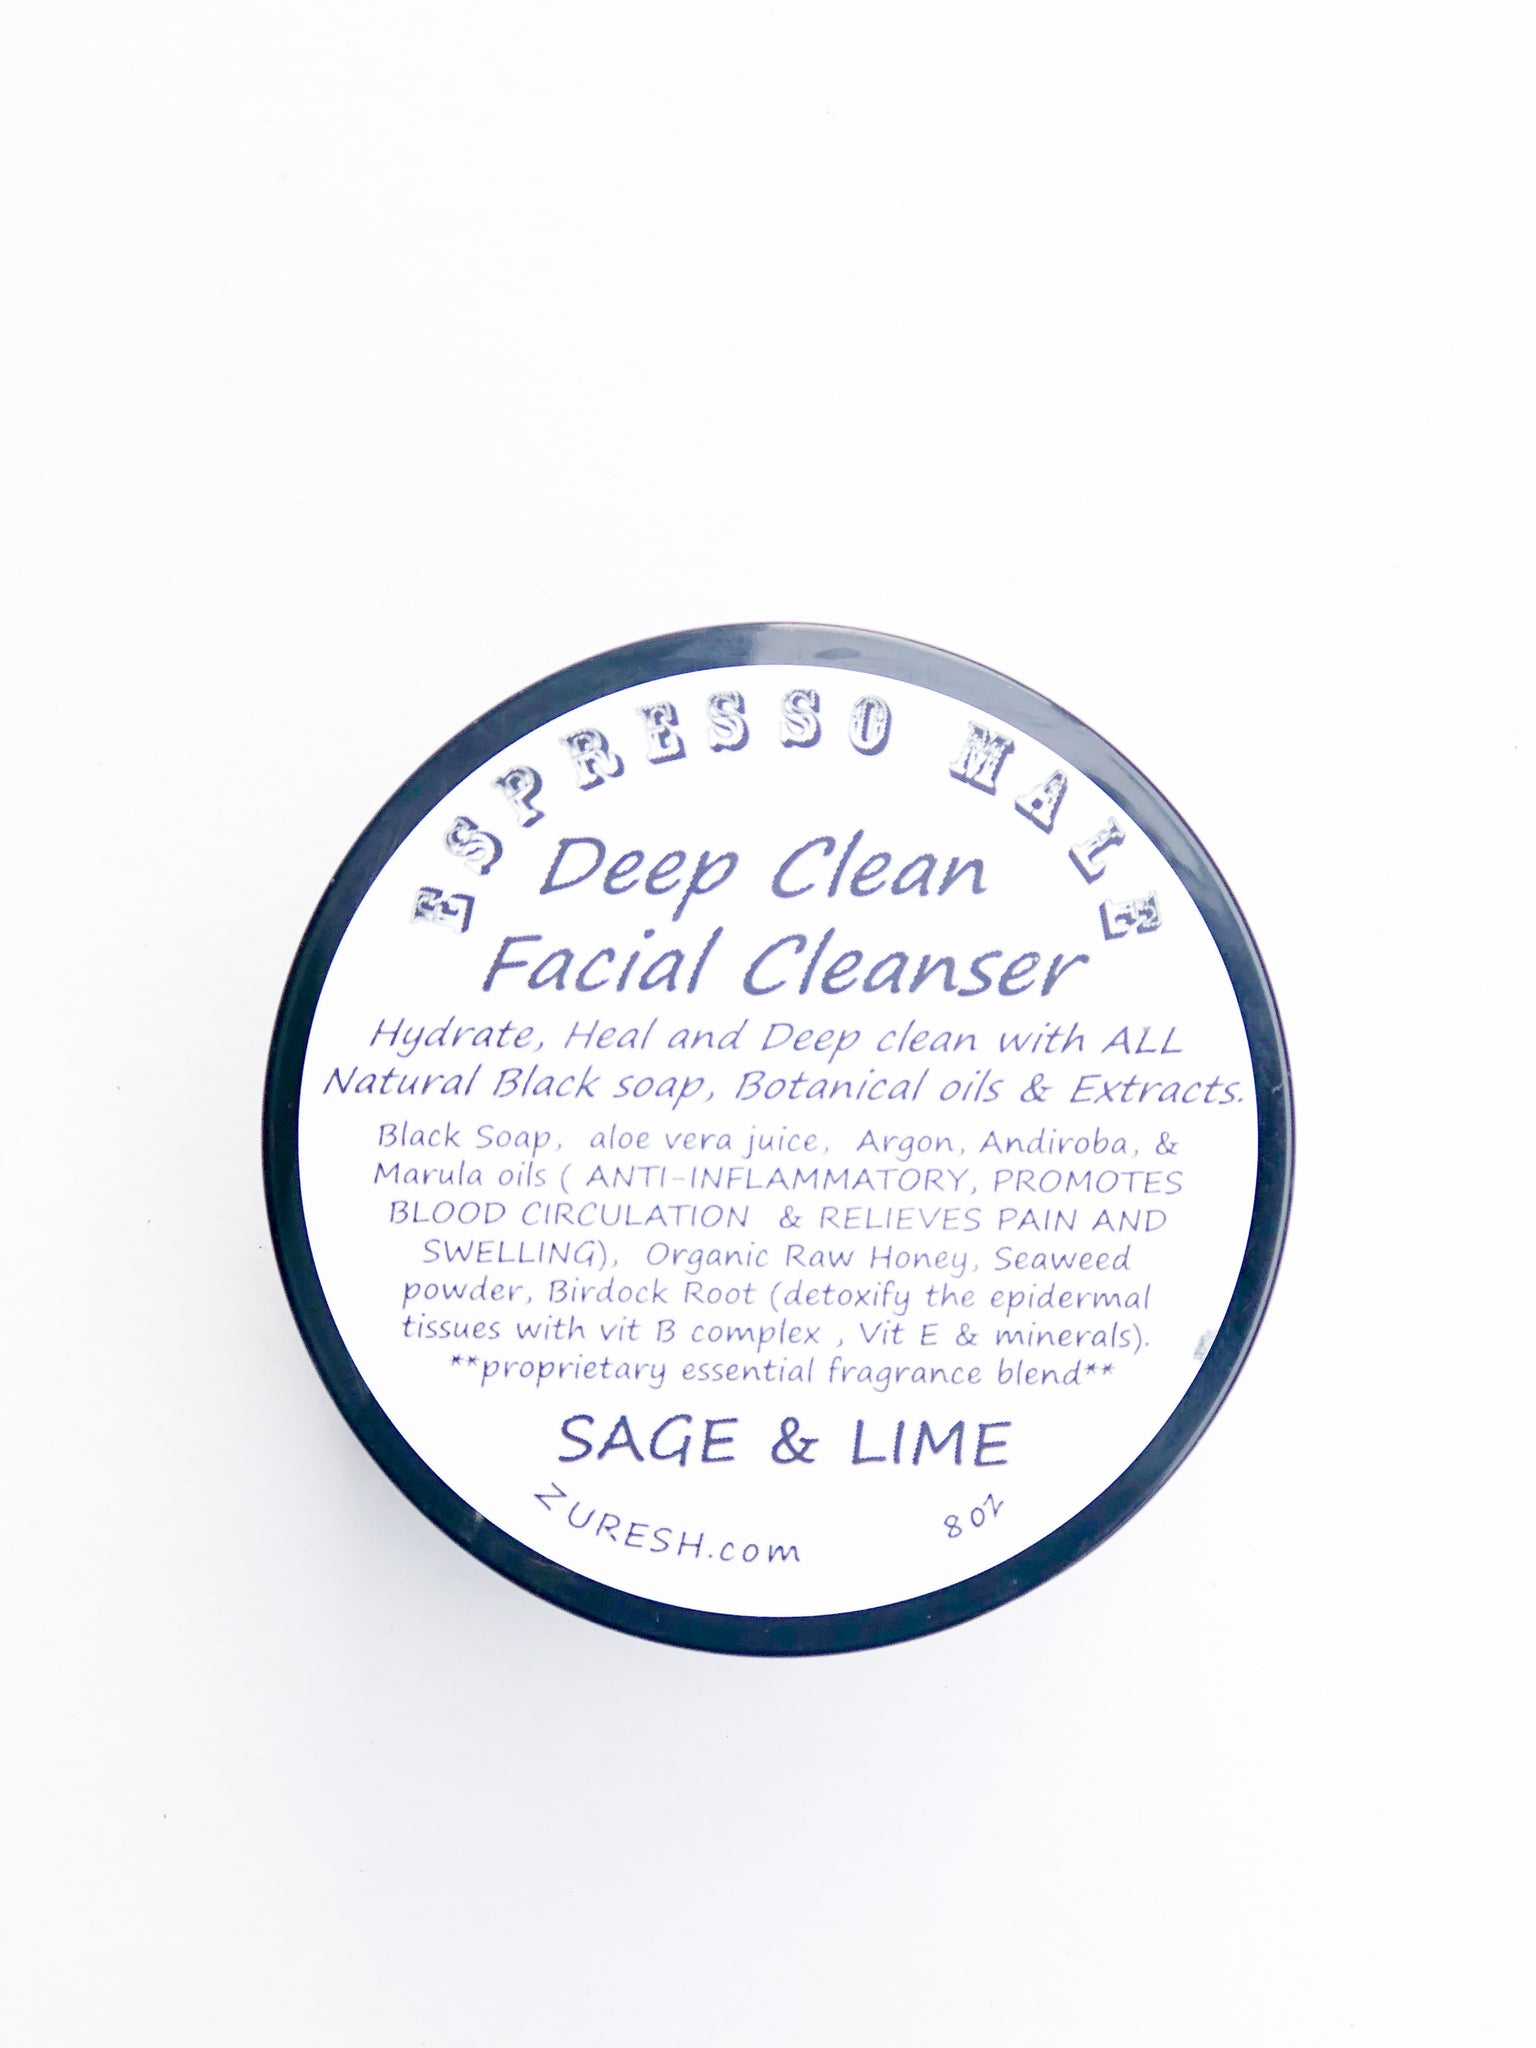 Zuresh Men's Deep Clean Facial Cleanser